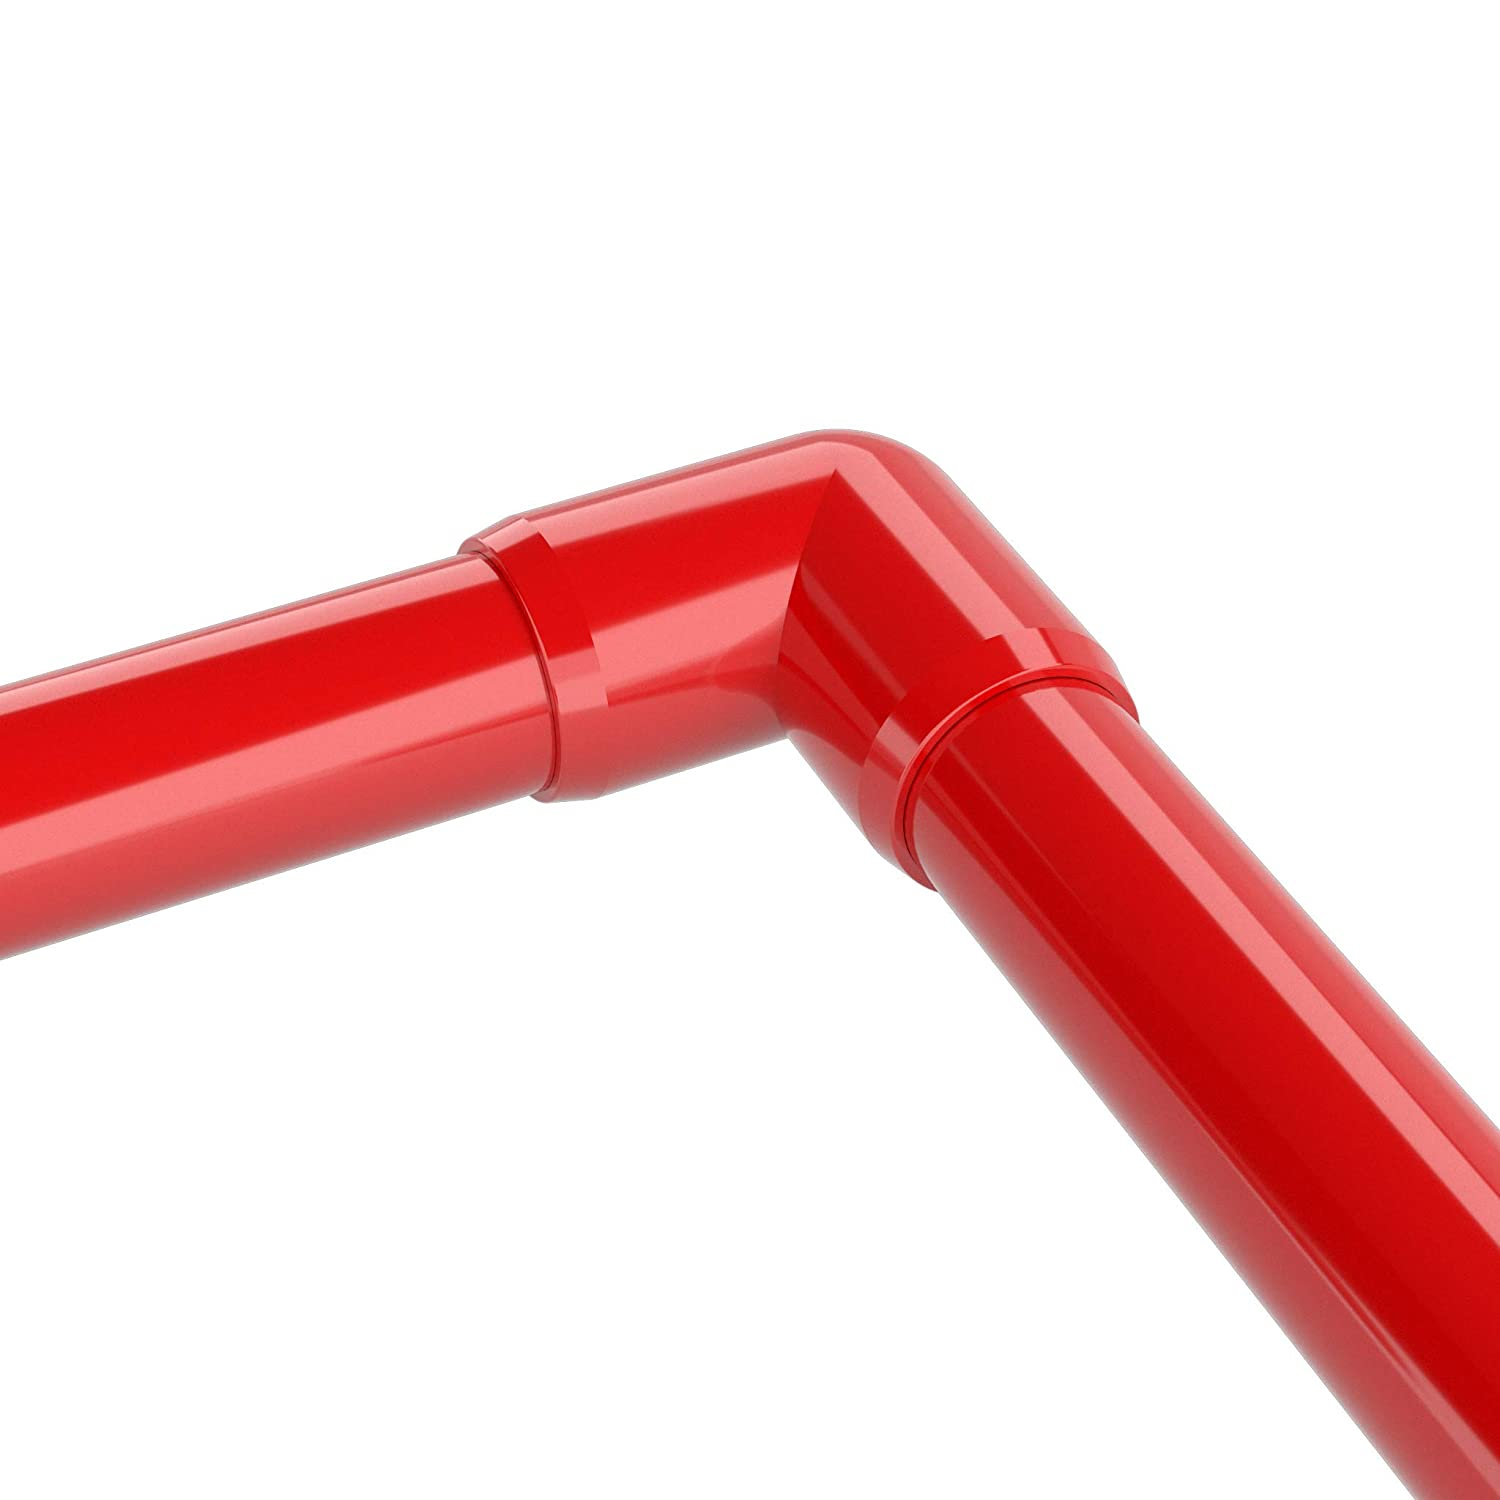 Furniture Grade FORMUFIT F01290E-RD-10 90 degree Elbow PVC Fitting 1//2 Size Pack of 10 1//2 Size Red